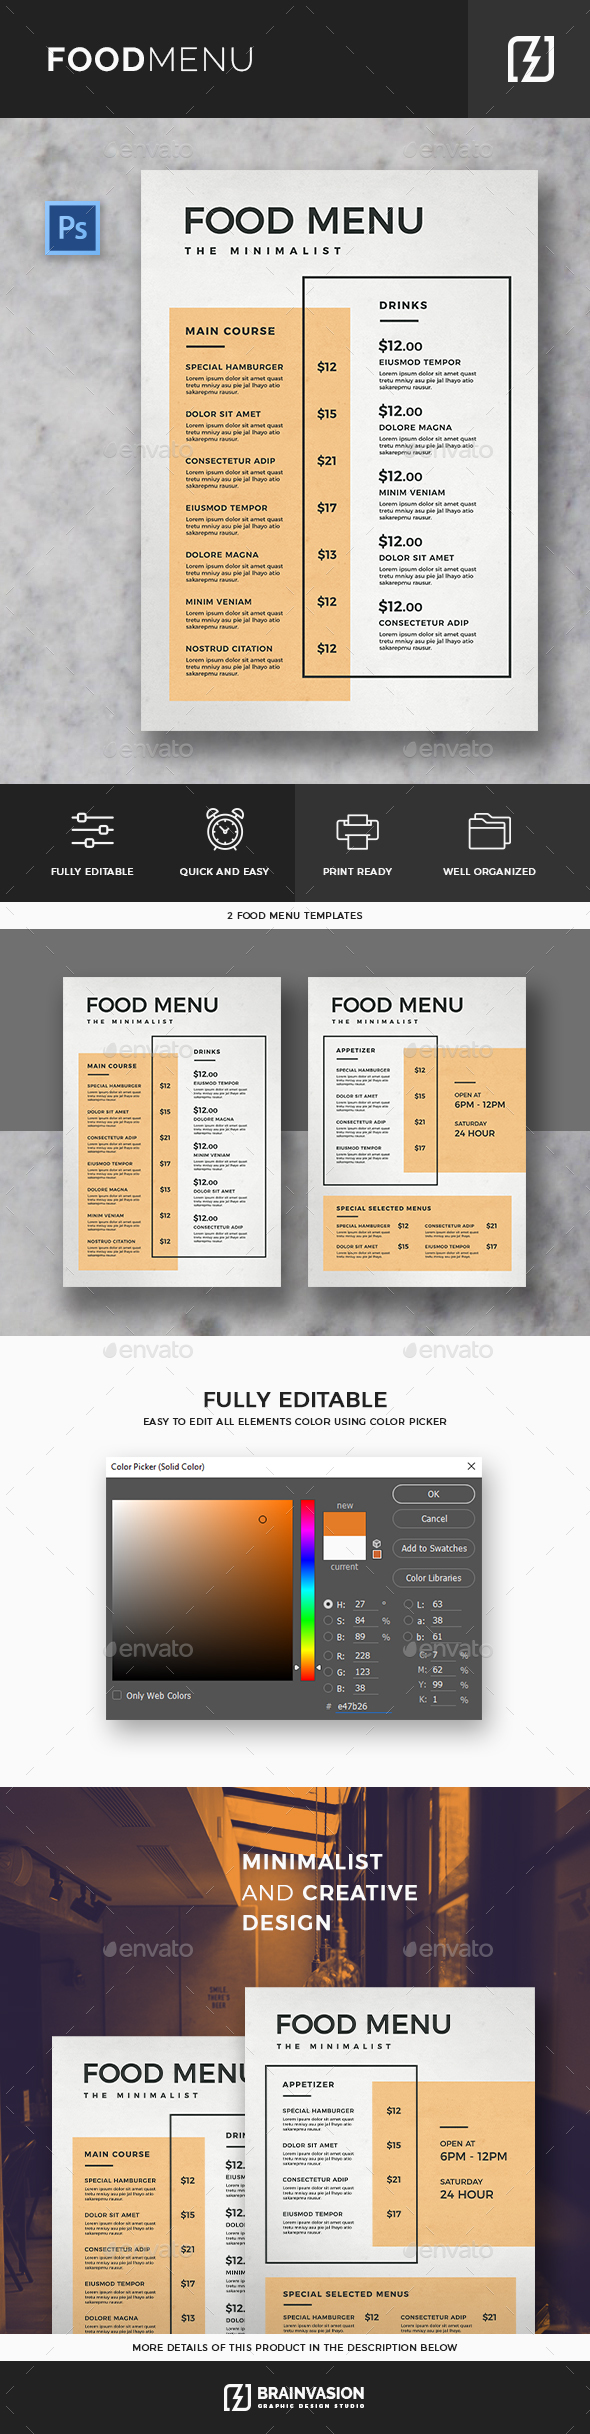 Minimal Food Menu Template